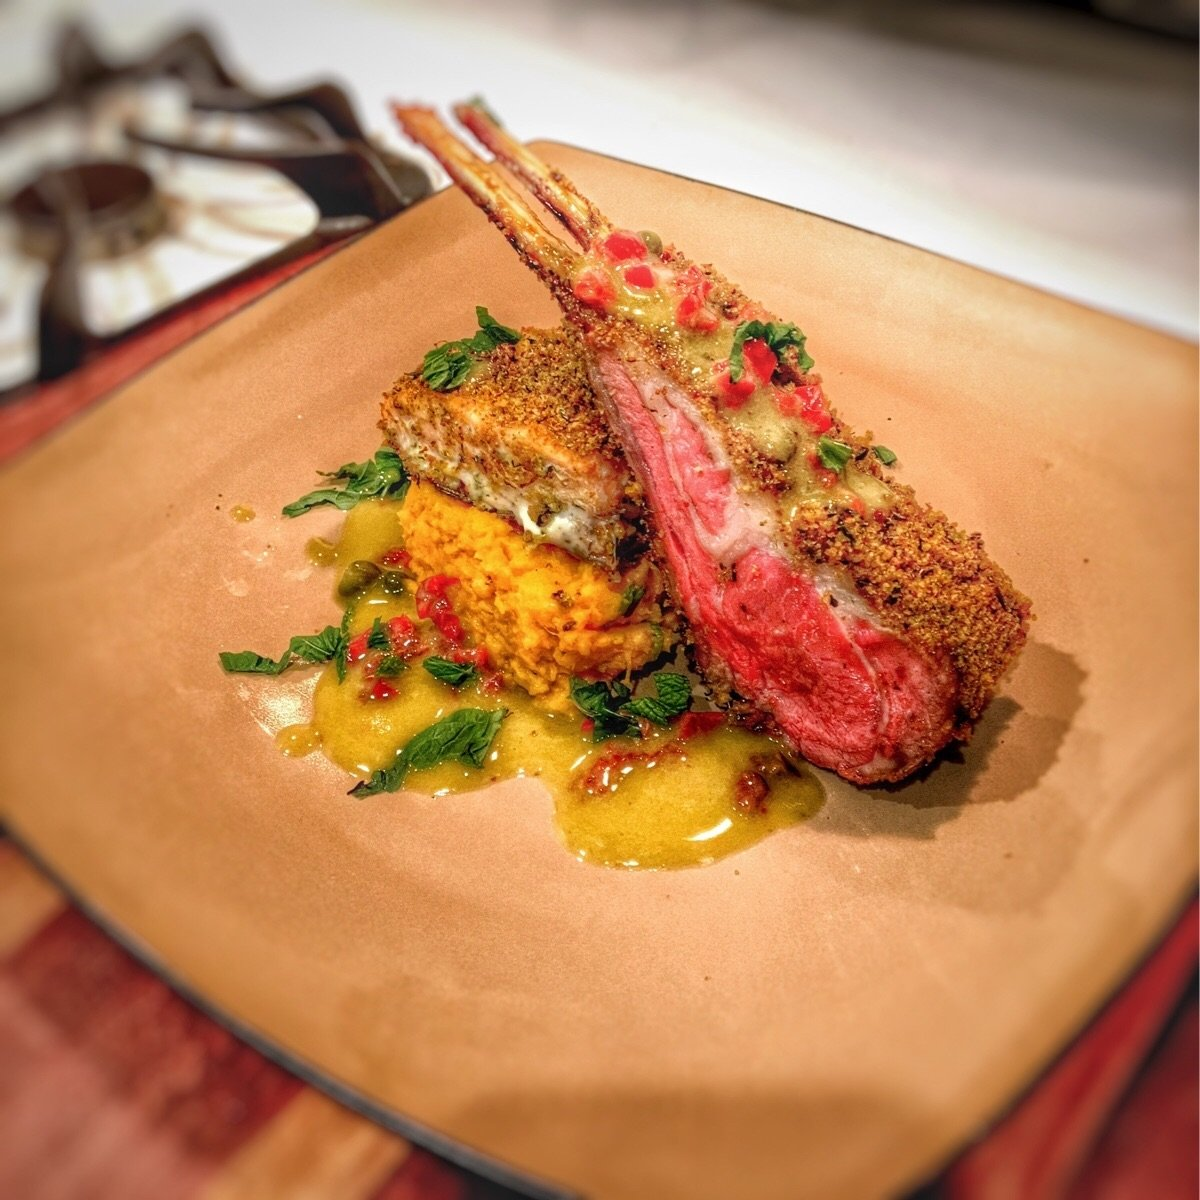 10 Trendy Surf And Turf Menu Ideas surf and turf mint crusted lamb racks and salmon over sweet potato 2020